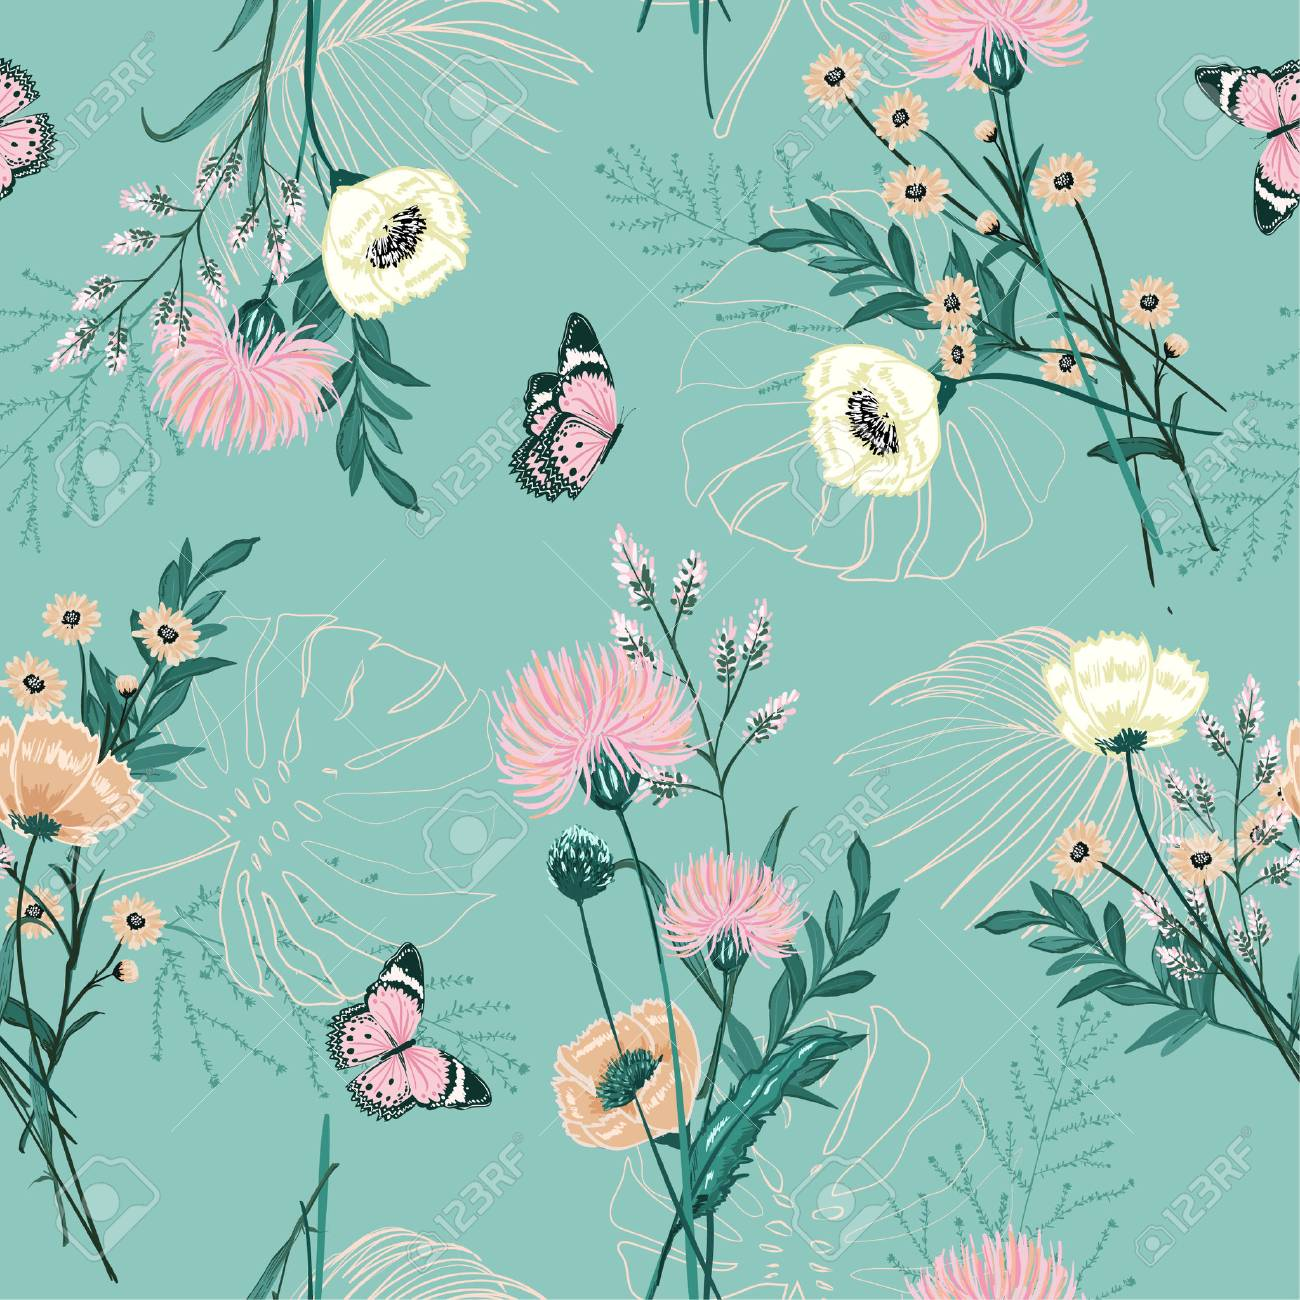 Trendy Pastel Of Many Kind Of Garden Flower Plants Botanical